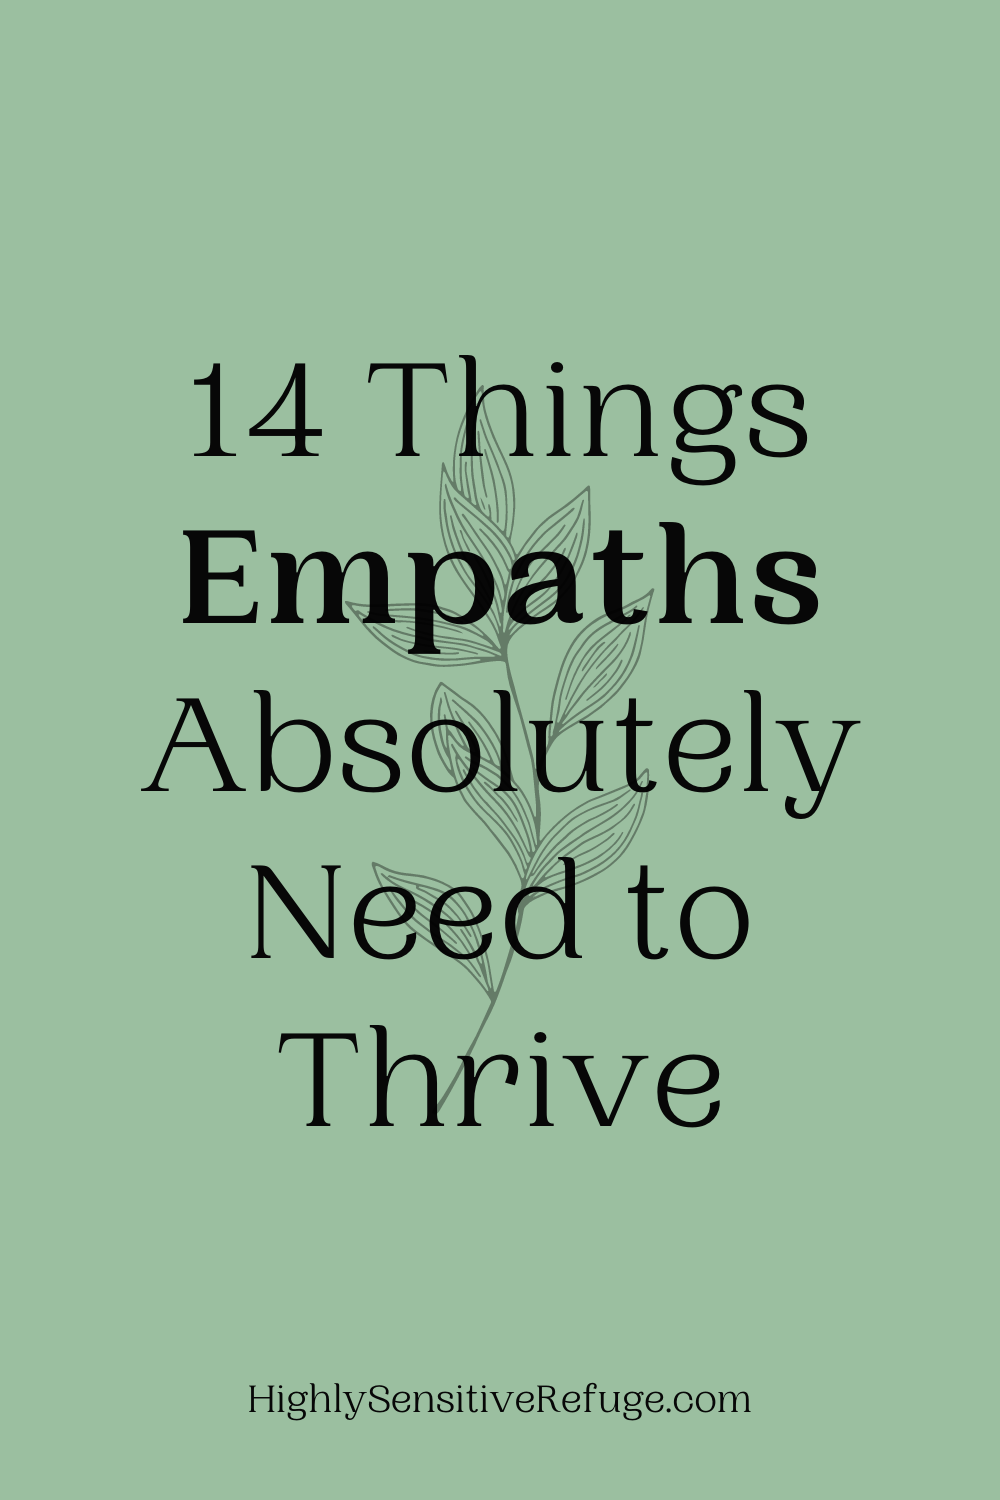 14 Things Empaths Absolutely Need to Thrive